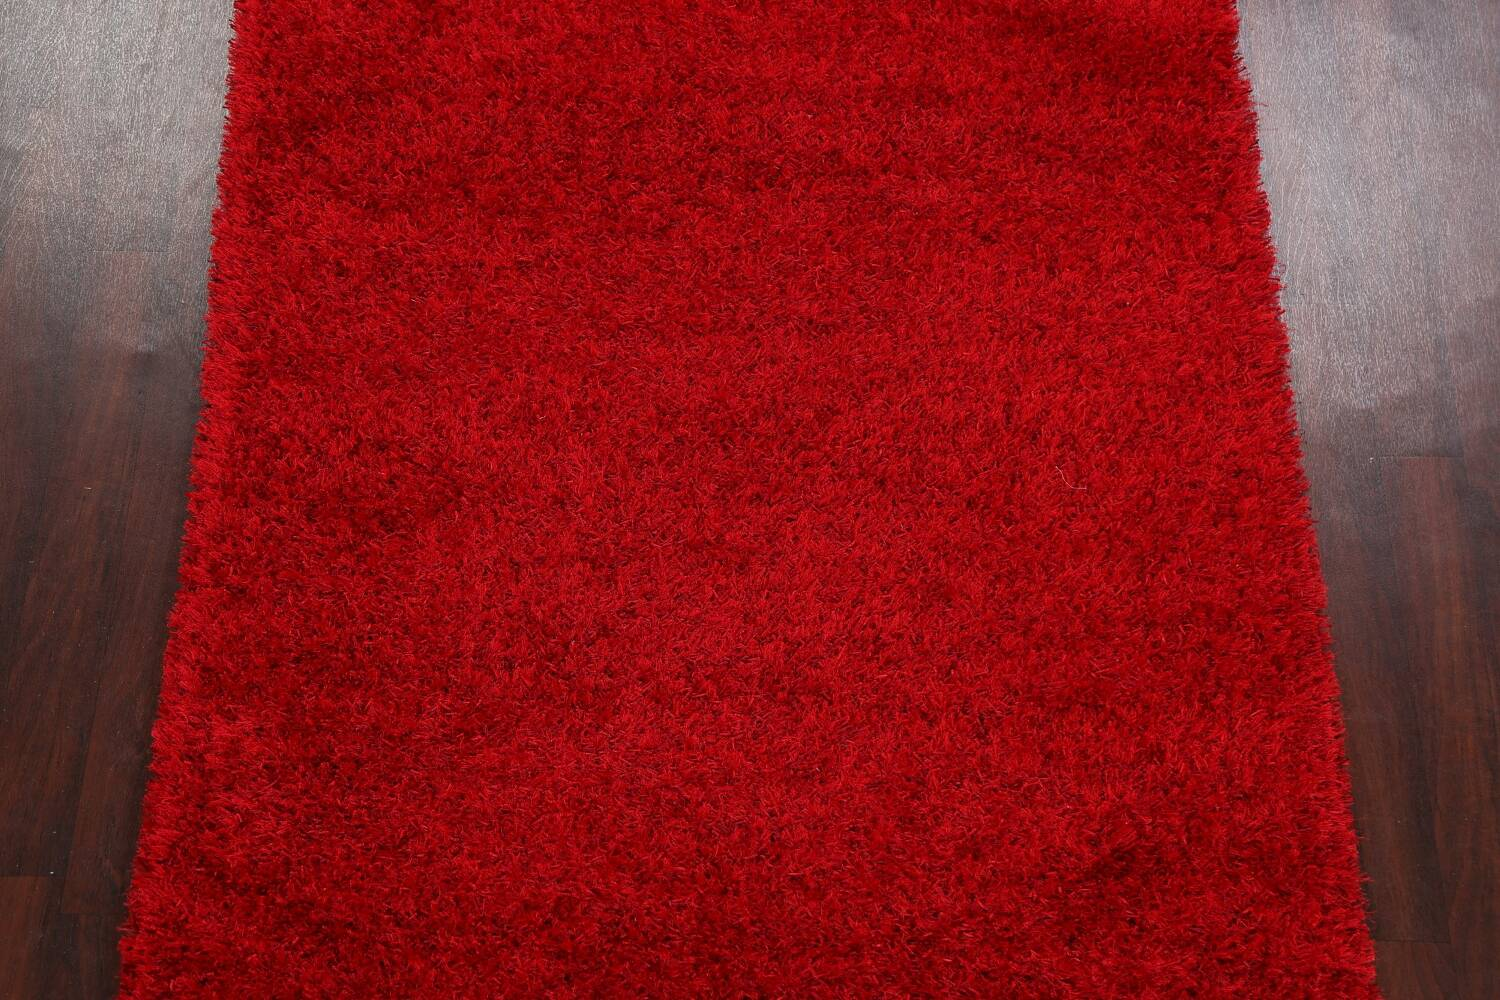 Red Plush Shaggy Area Rug 5x7 image 3